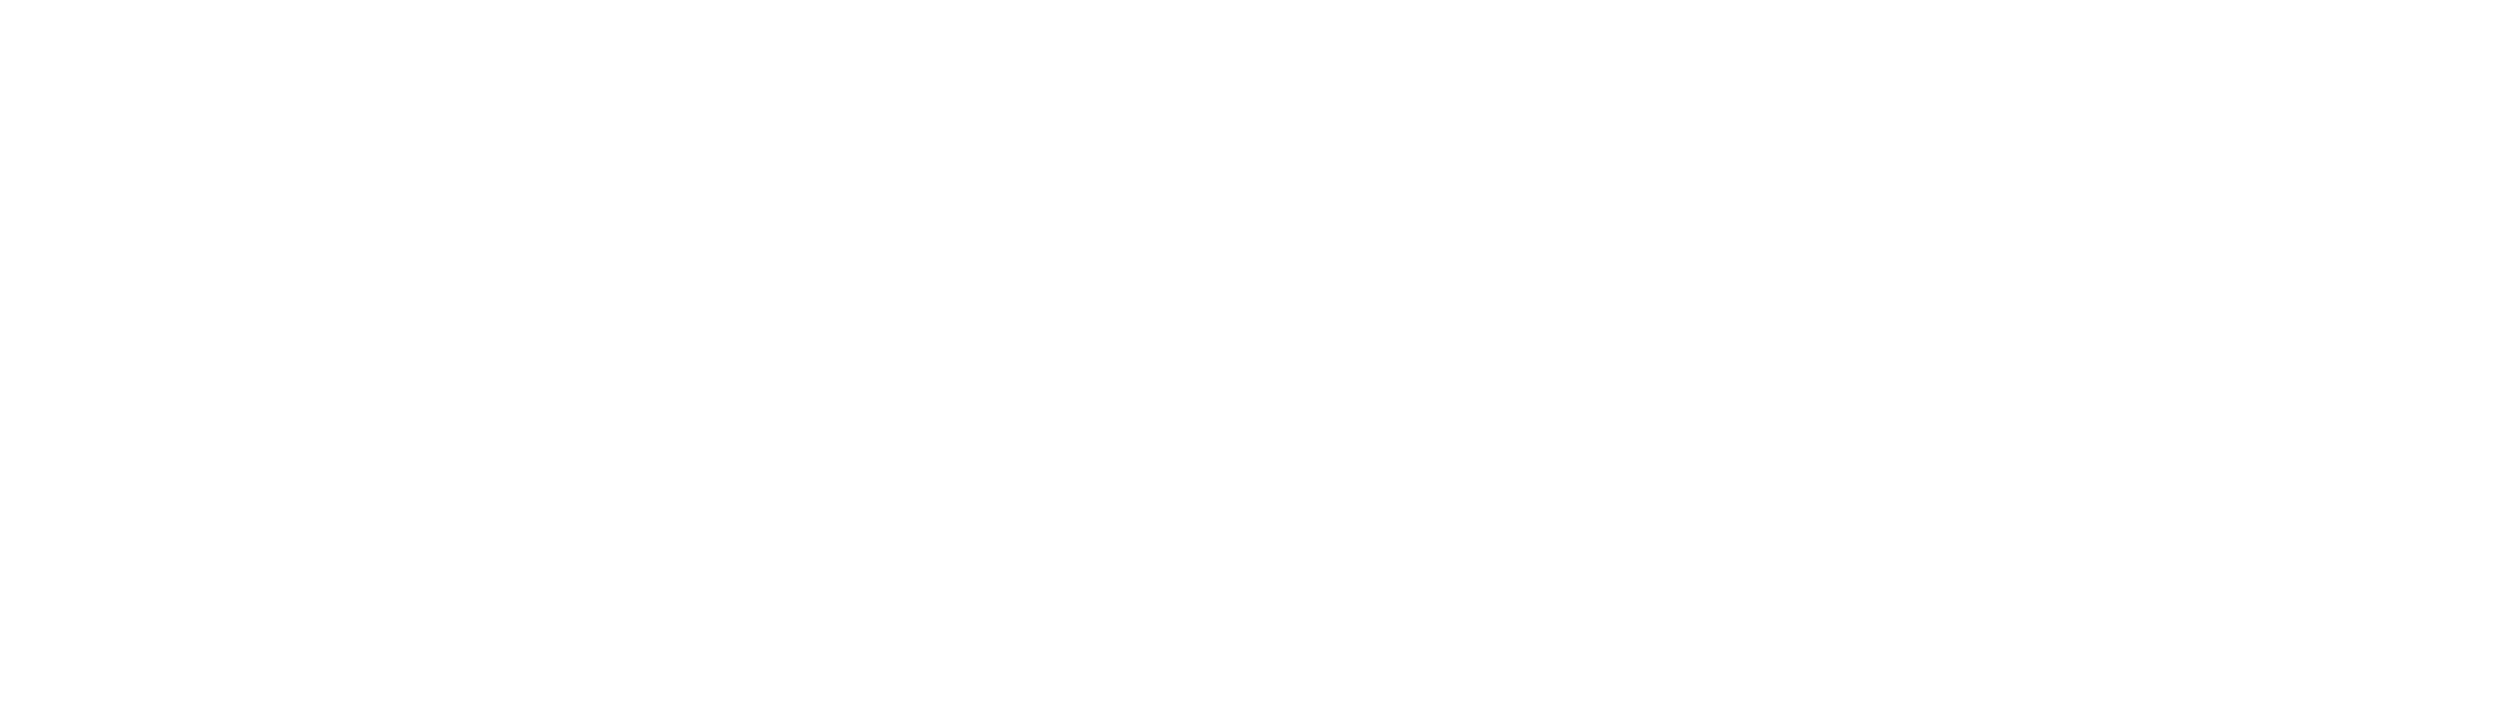 point_of_difference_white no line.png